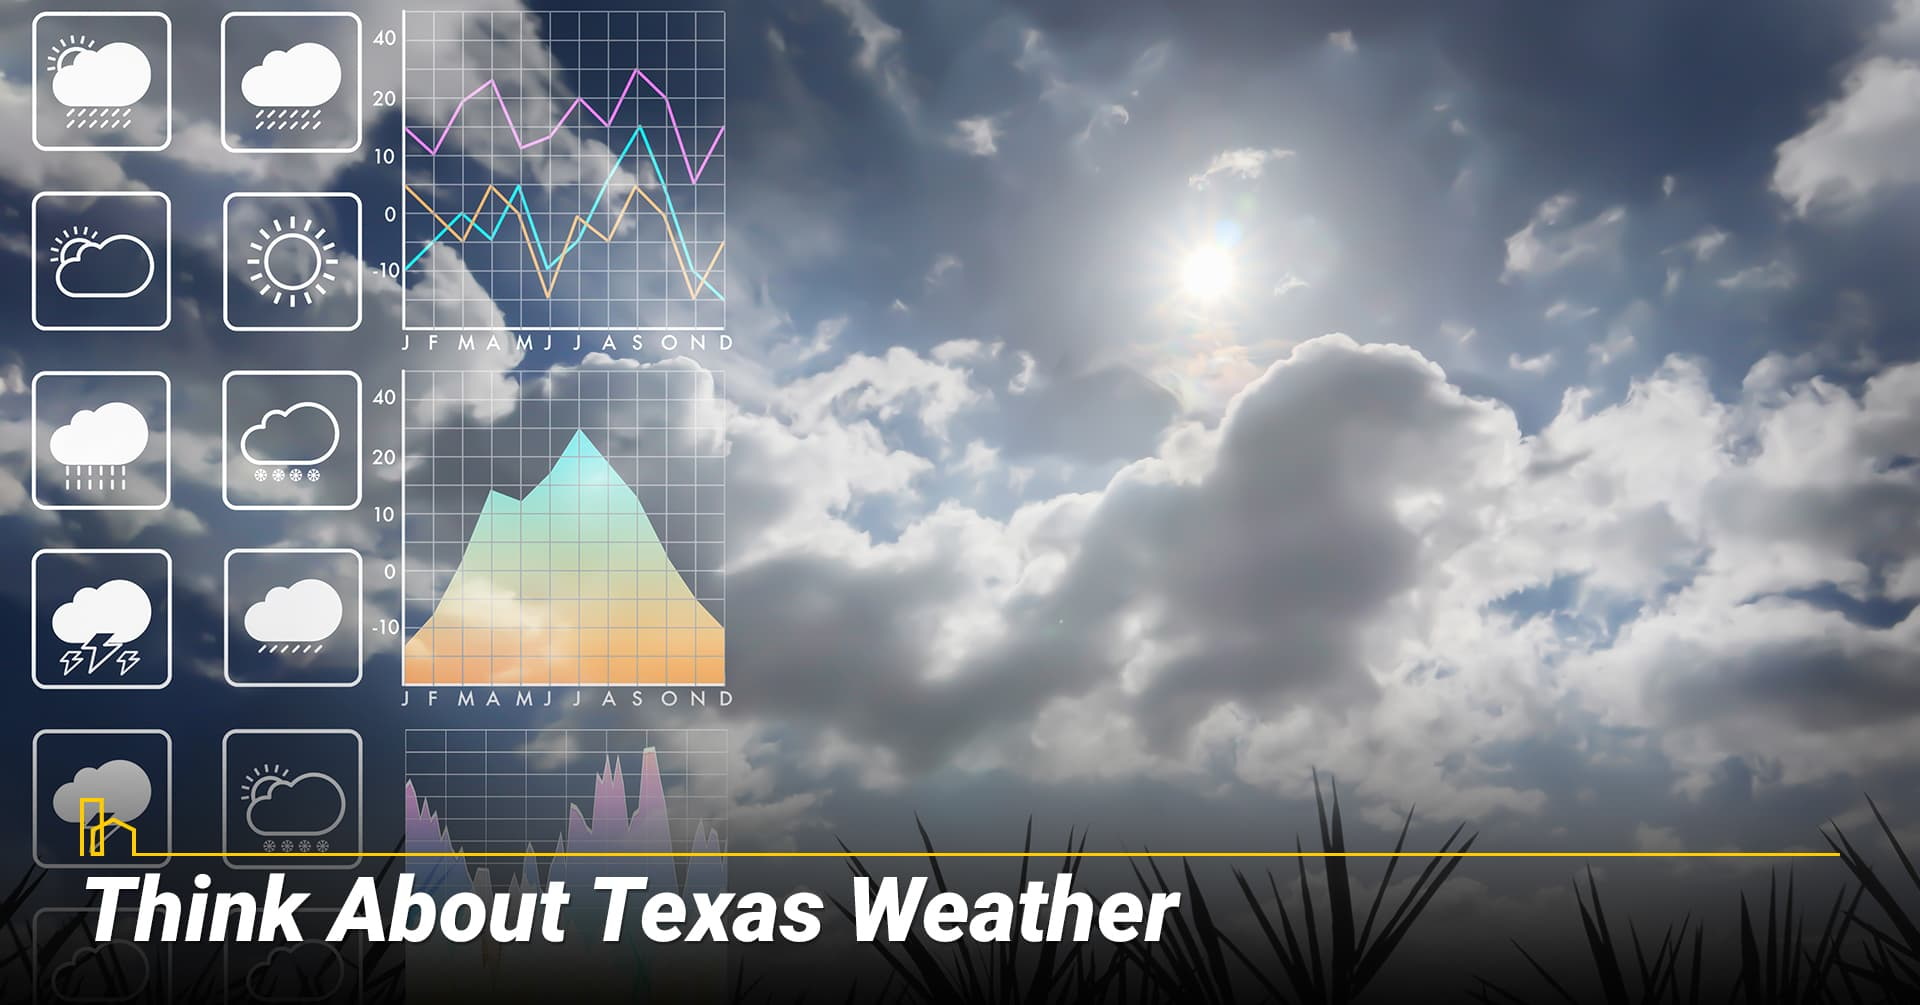 Think About Texas Weather, consider local weather